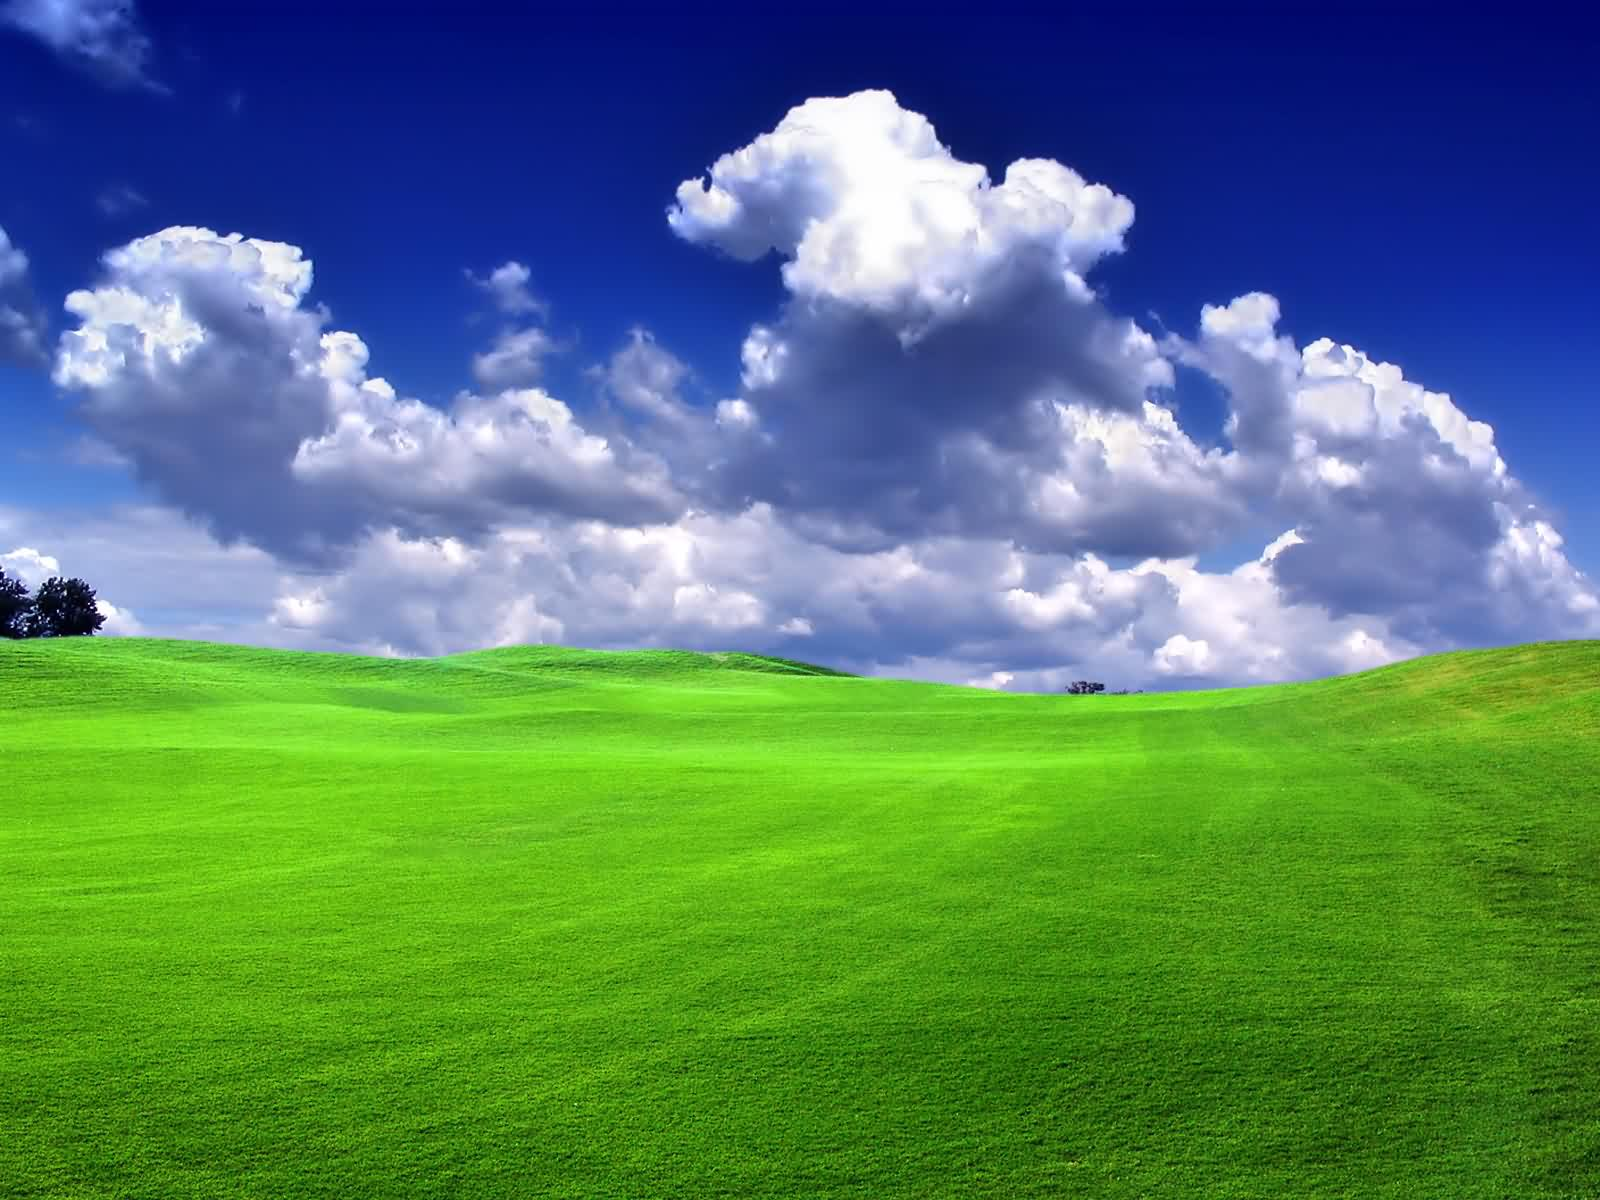 Nature wallpapers nature hd wallpapers 3d nature for 3d nature wallpaper for home